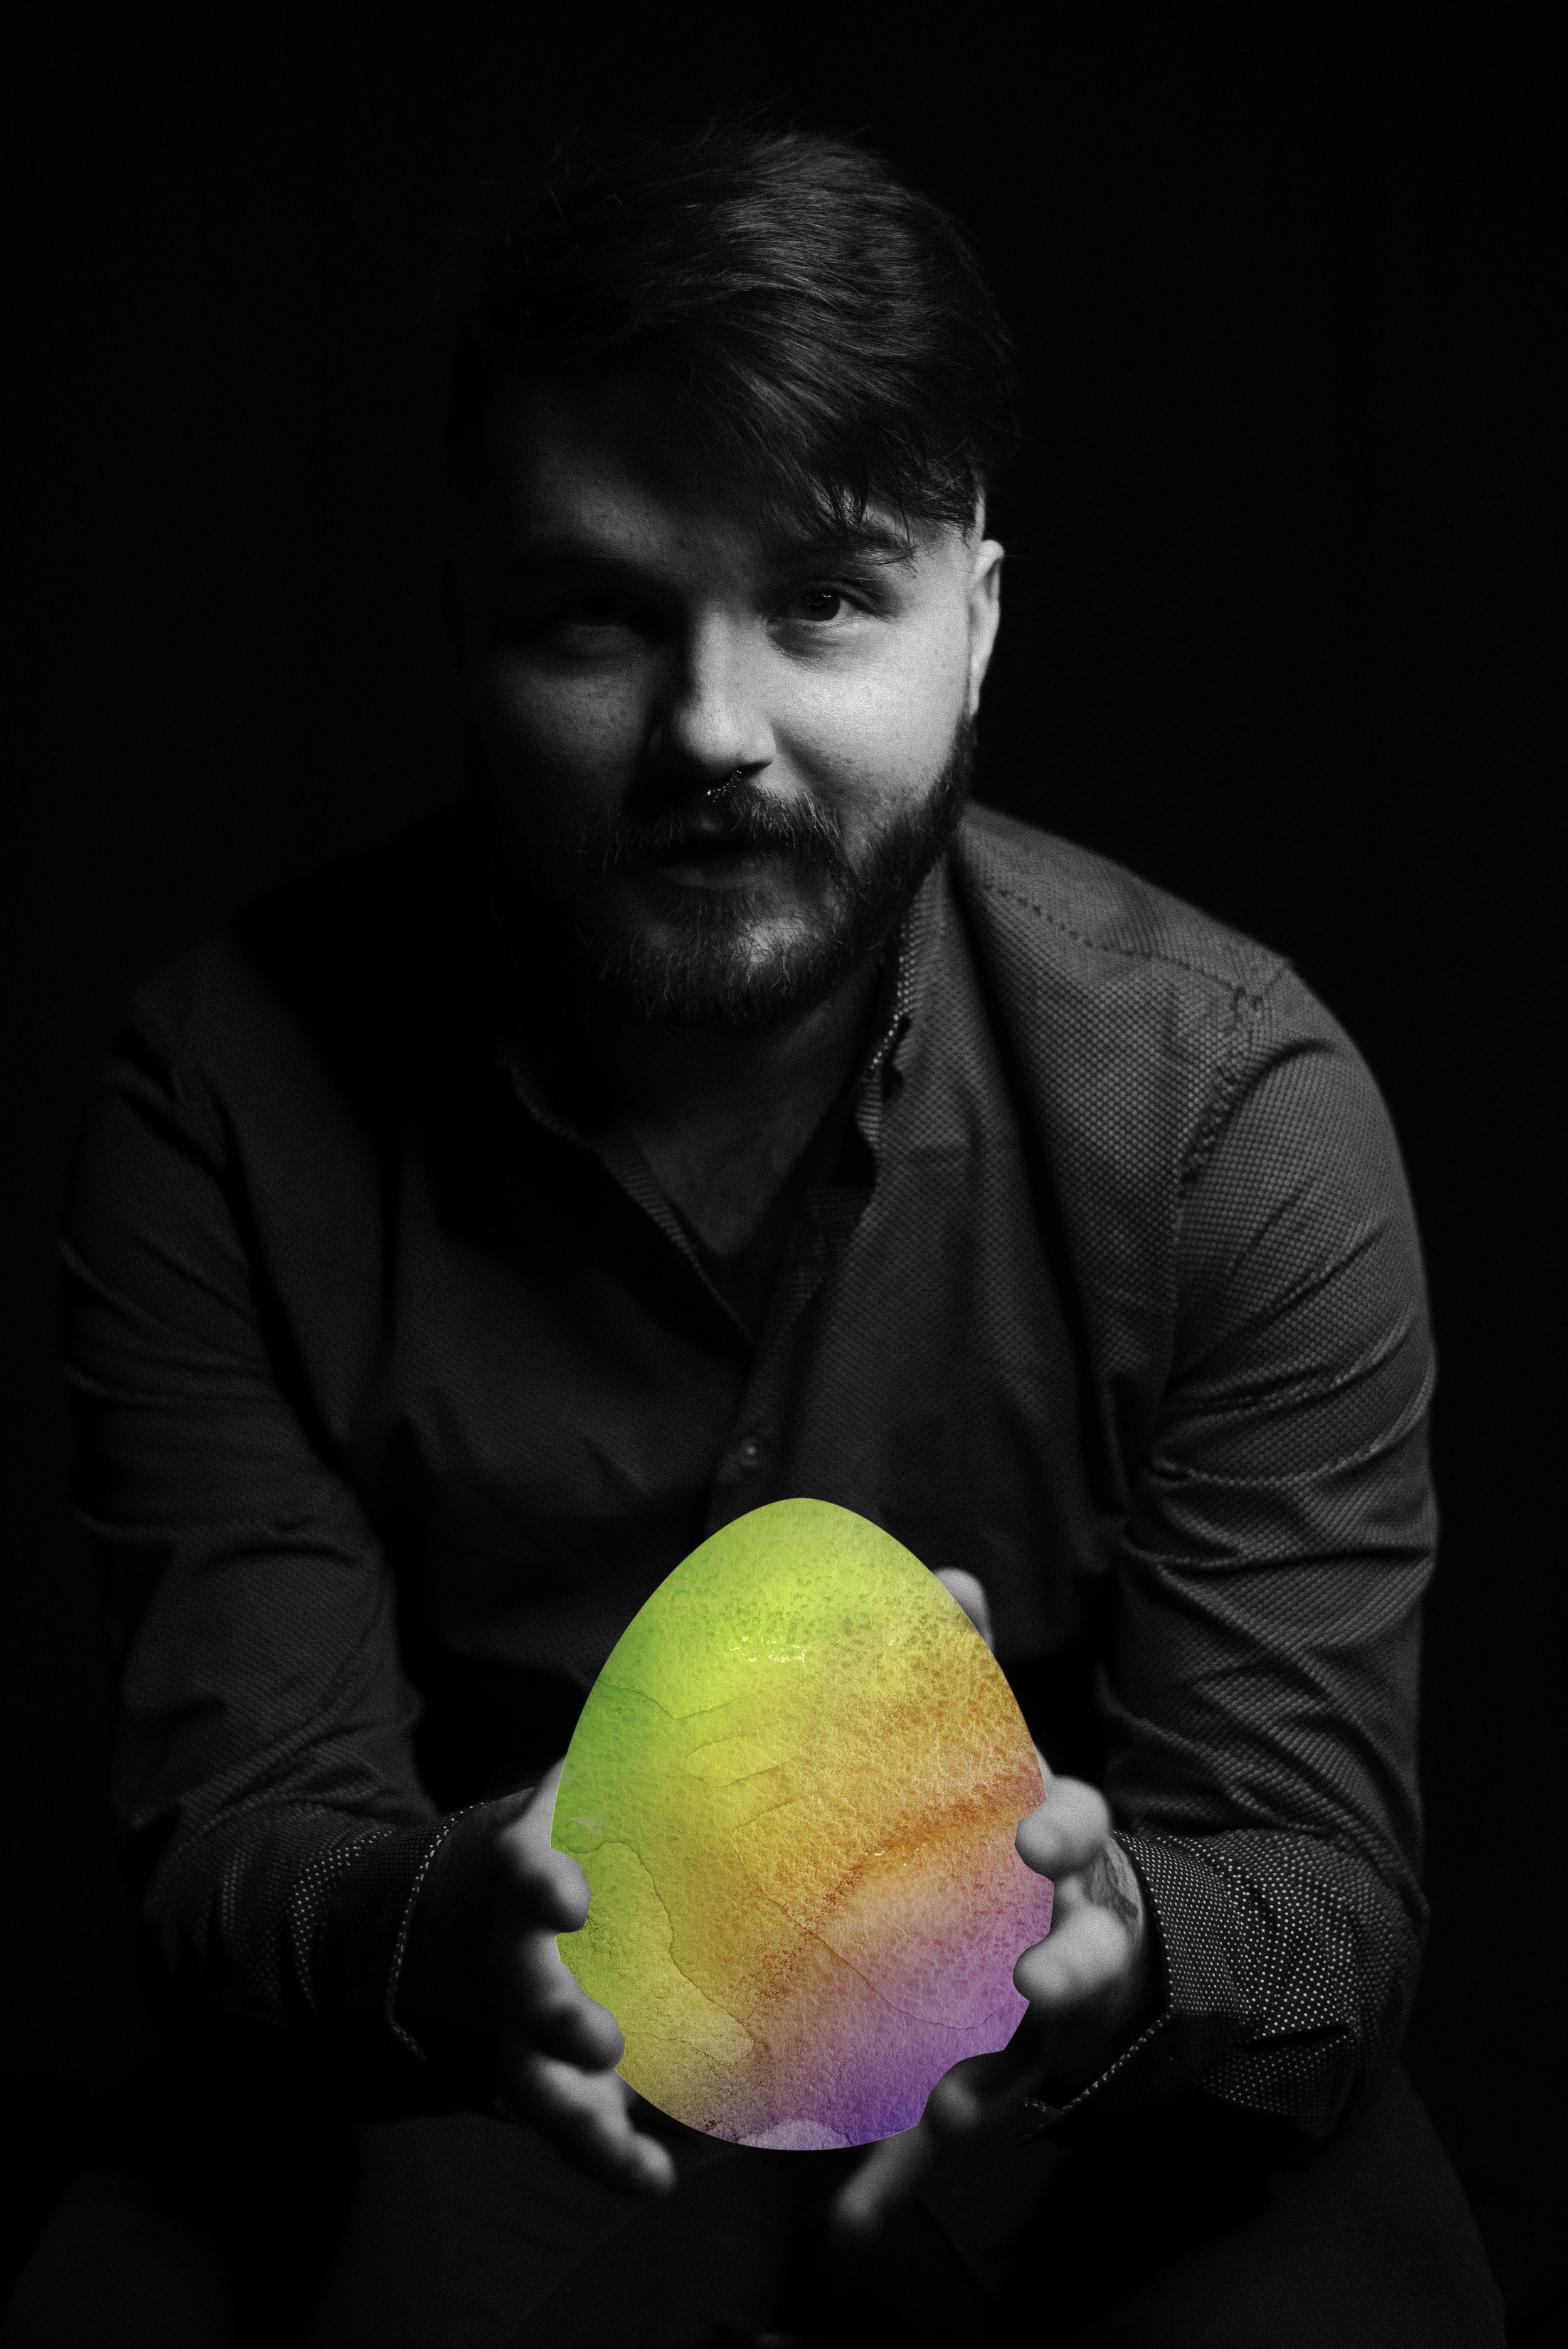 Wade Shaw holding an Easter Egg